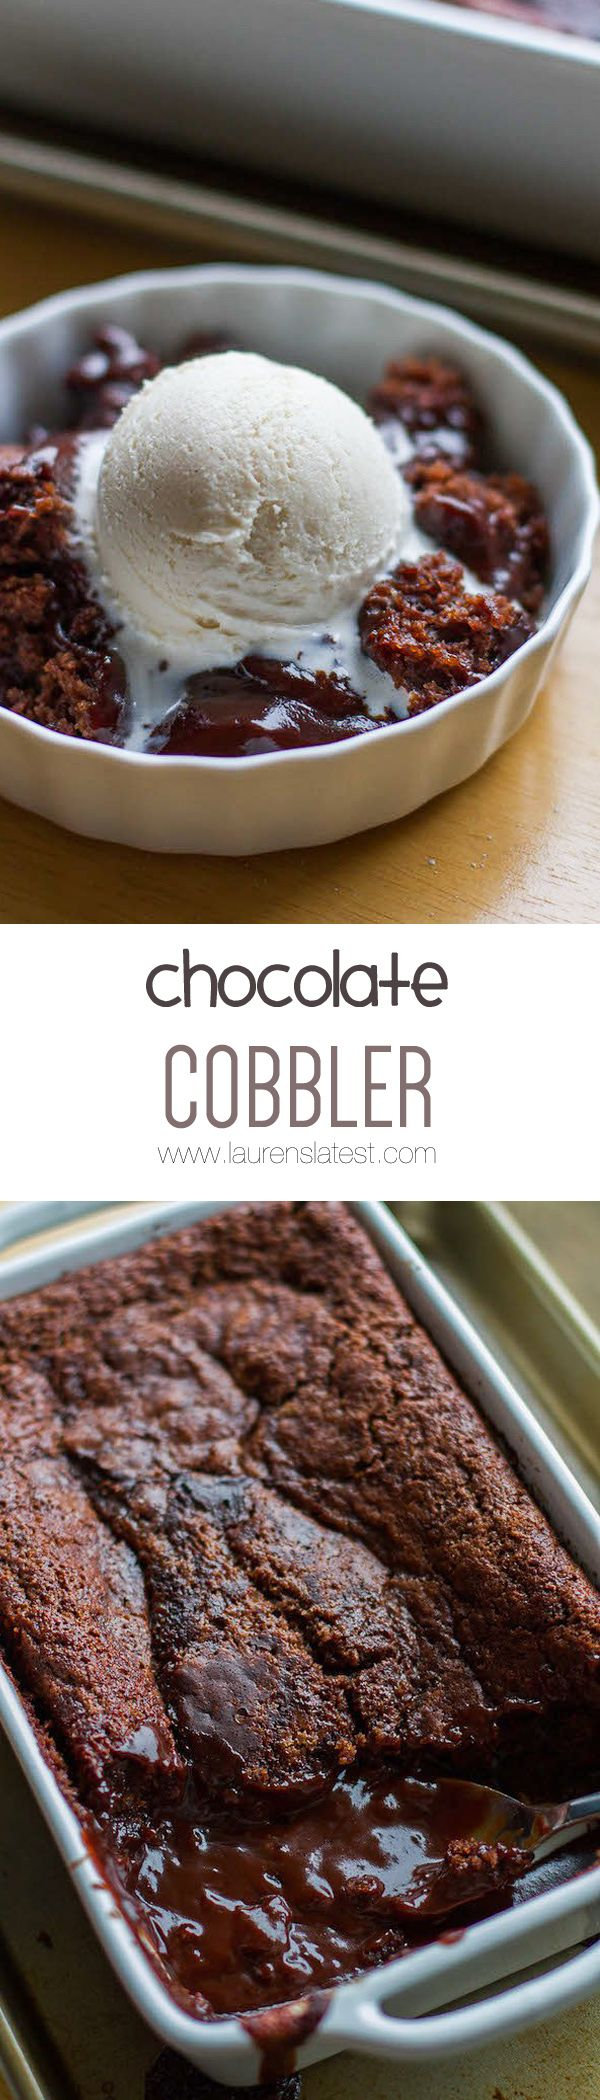 This Chocolate Cobbler is like chocolate pudding meets chocolate lava cake! So rich and delicious, plus so simple to throw together!